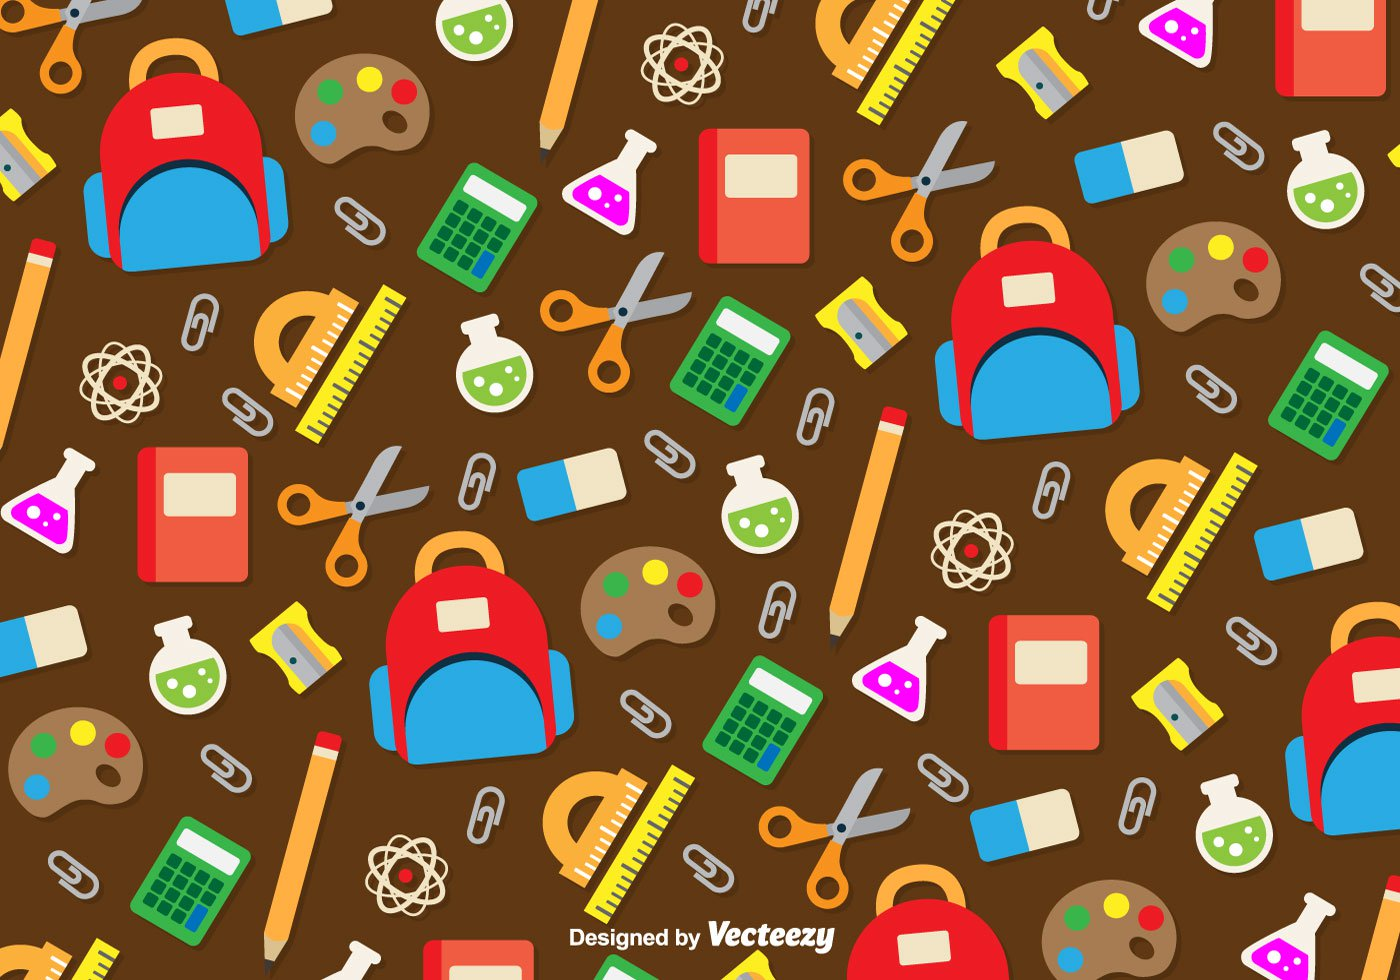 School utensils icons background   Download Vector 1400x980